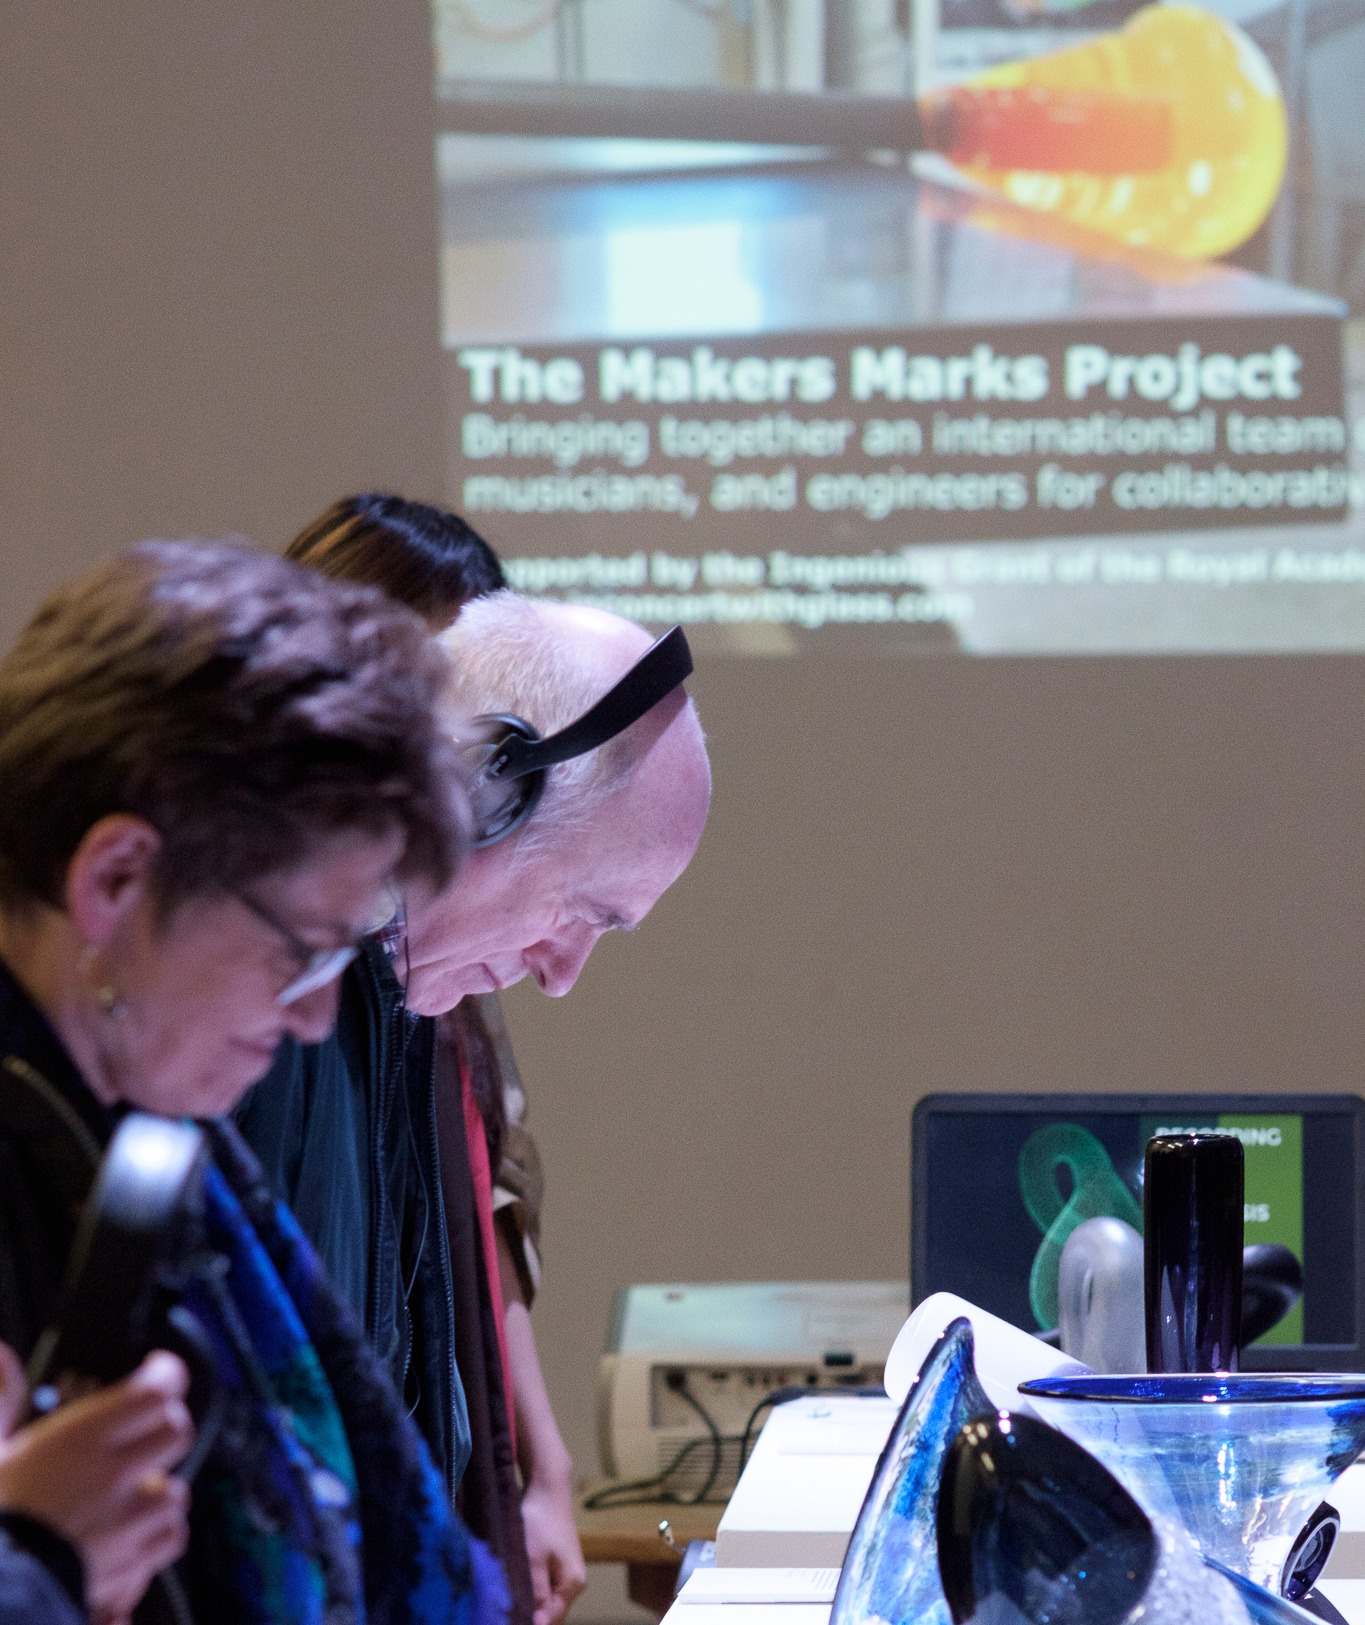 'Makers Marks' in exhibition at Summerhall, Edinburgh